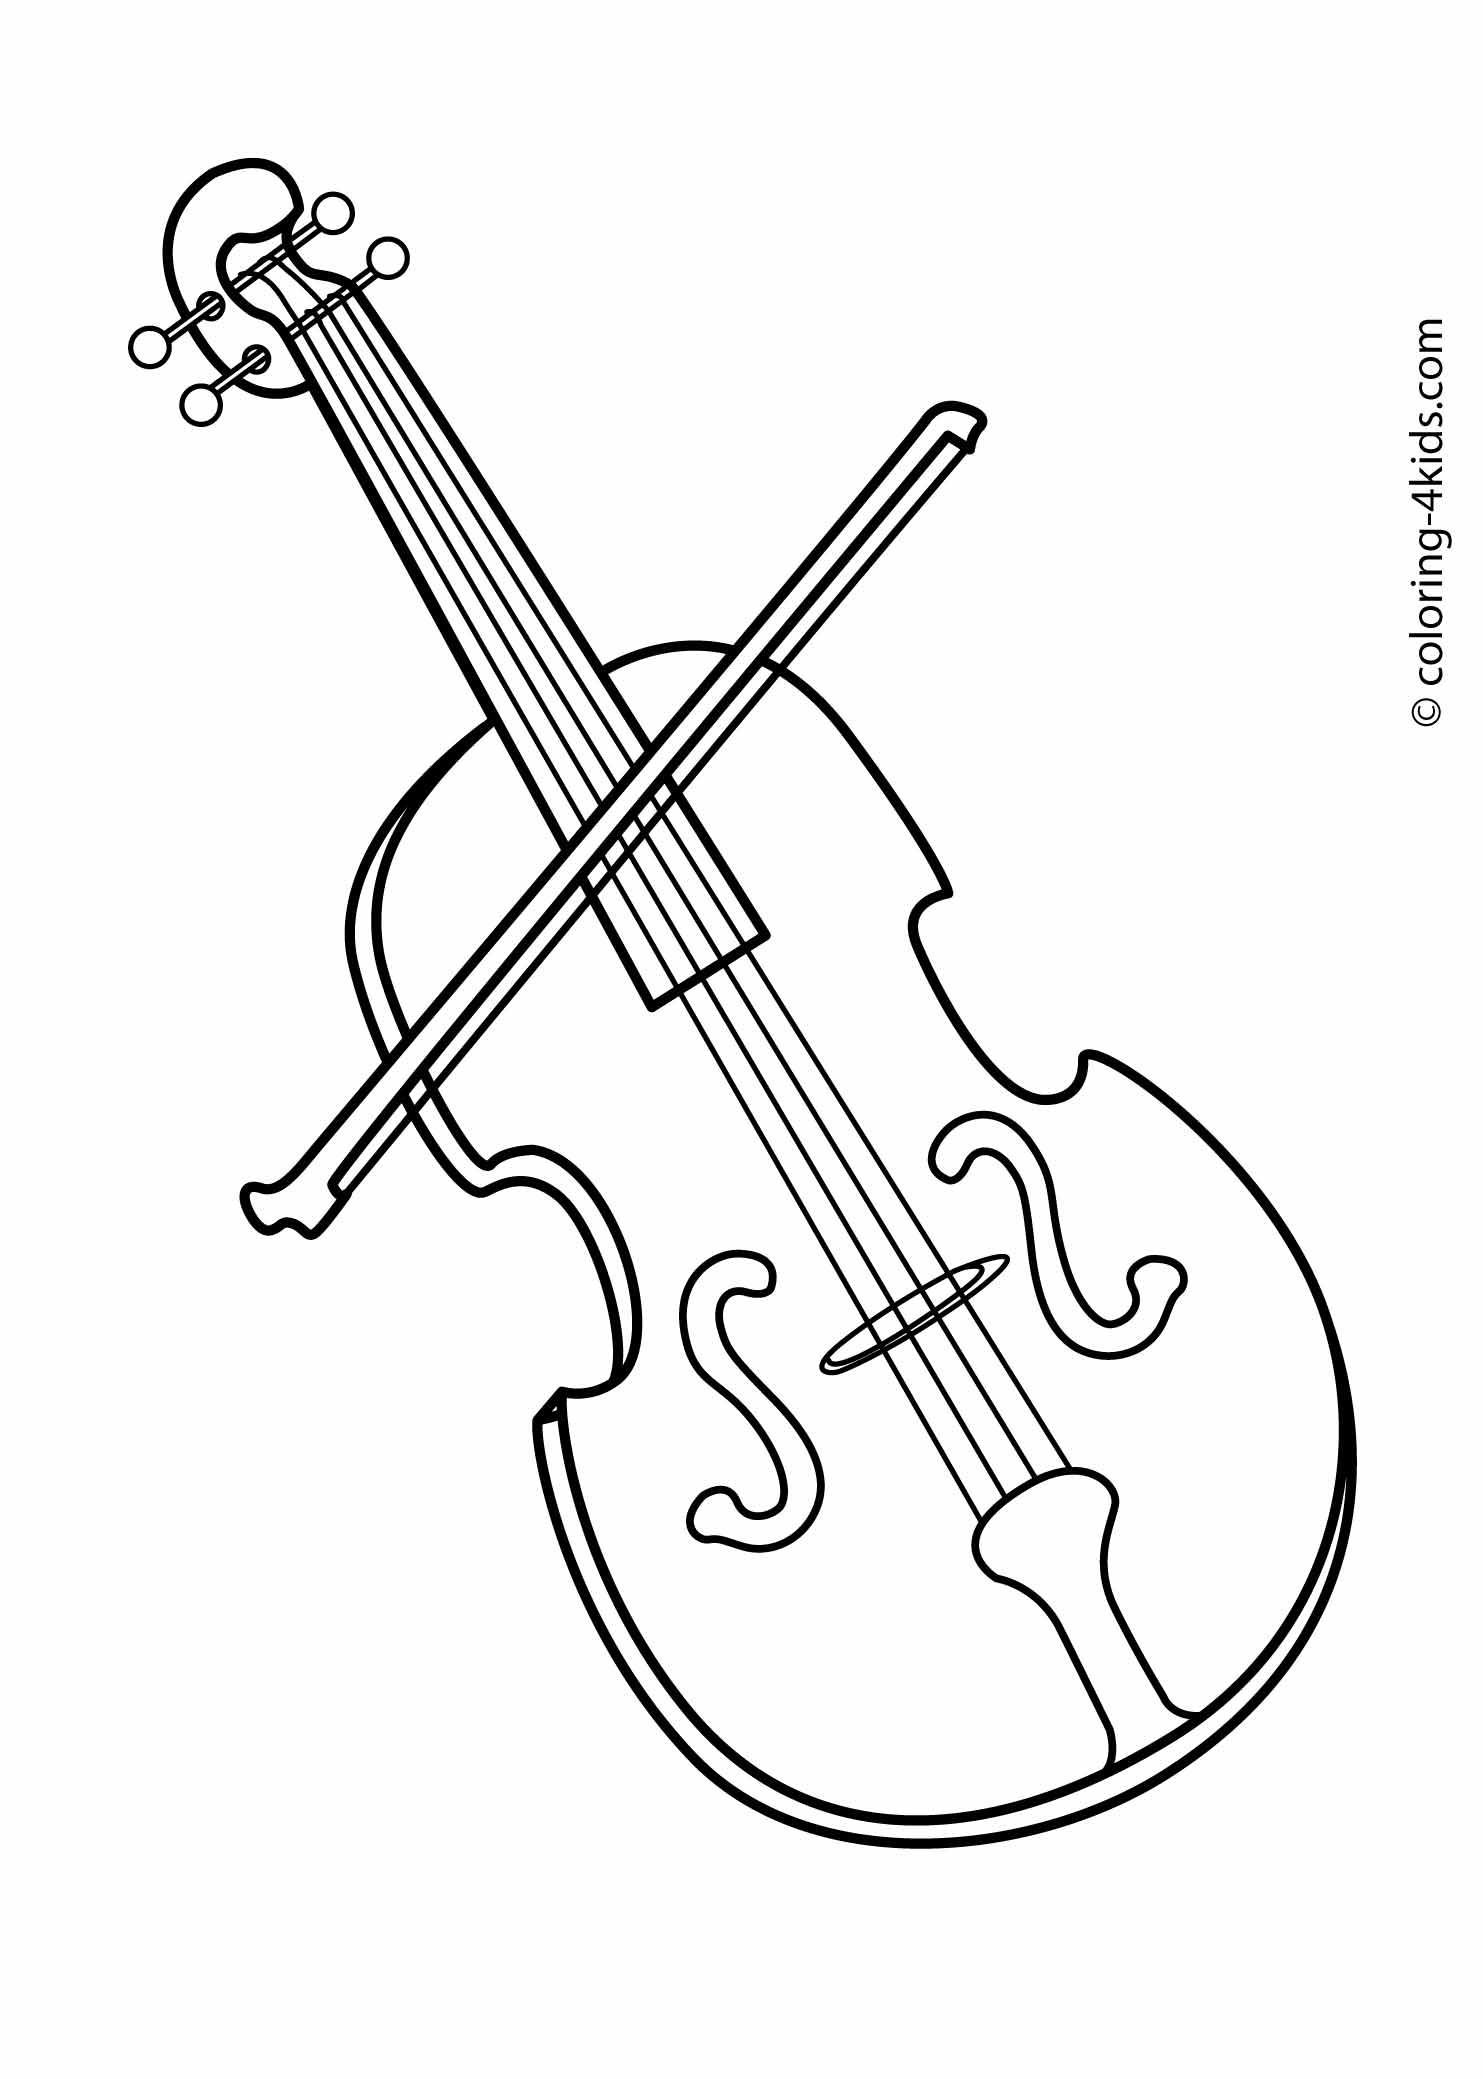 Violin musical instruments coloring pages  Violin, Coloring pages